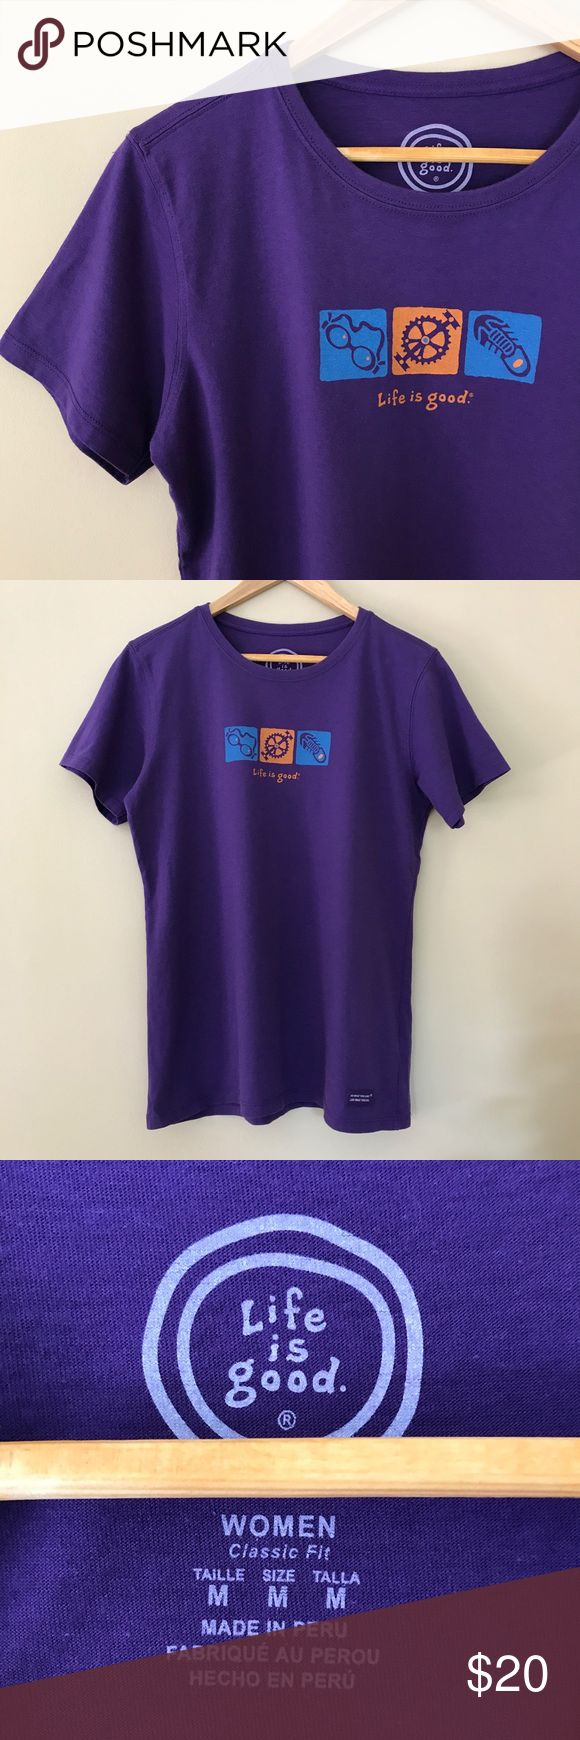 NWOT - Life is Good Purple Triathlon Shirt ☮️ NWOT - Brand New without Tags, never worn!  Life is Good Purple T-shirt. ☮️ Triathlon logo on front of shirt (swim, bike, run).  Size Women's Medium.  Official Merchandise Purchased from 2016 Iron Man Race!  ⭐️30% OFF BUNDLES OF 2 OR MORE ITEMS!⭐️ Life Is Good Tops